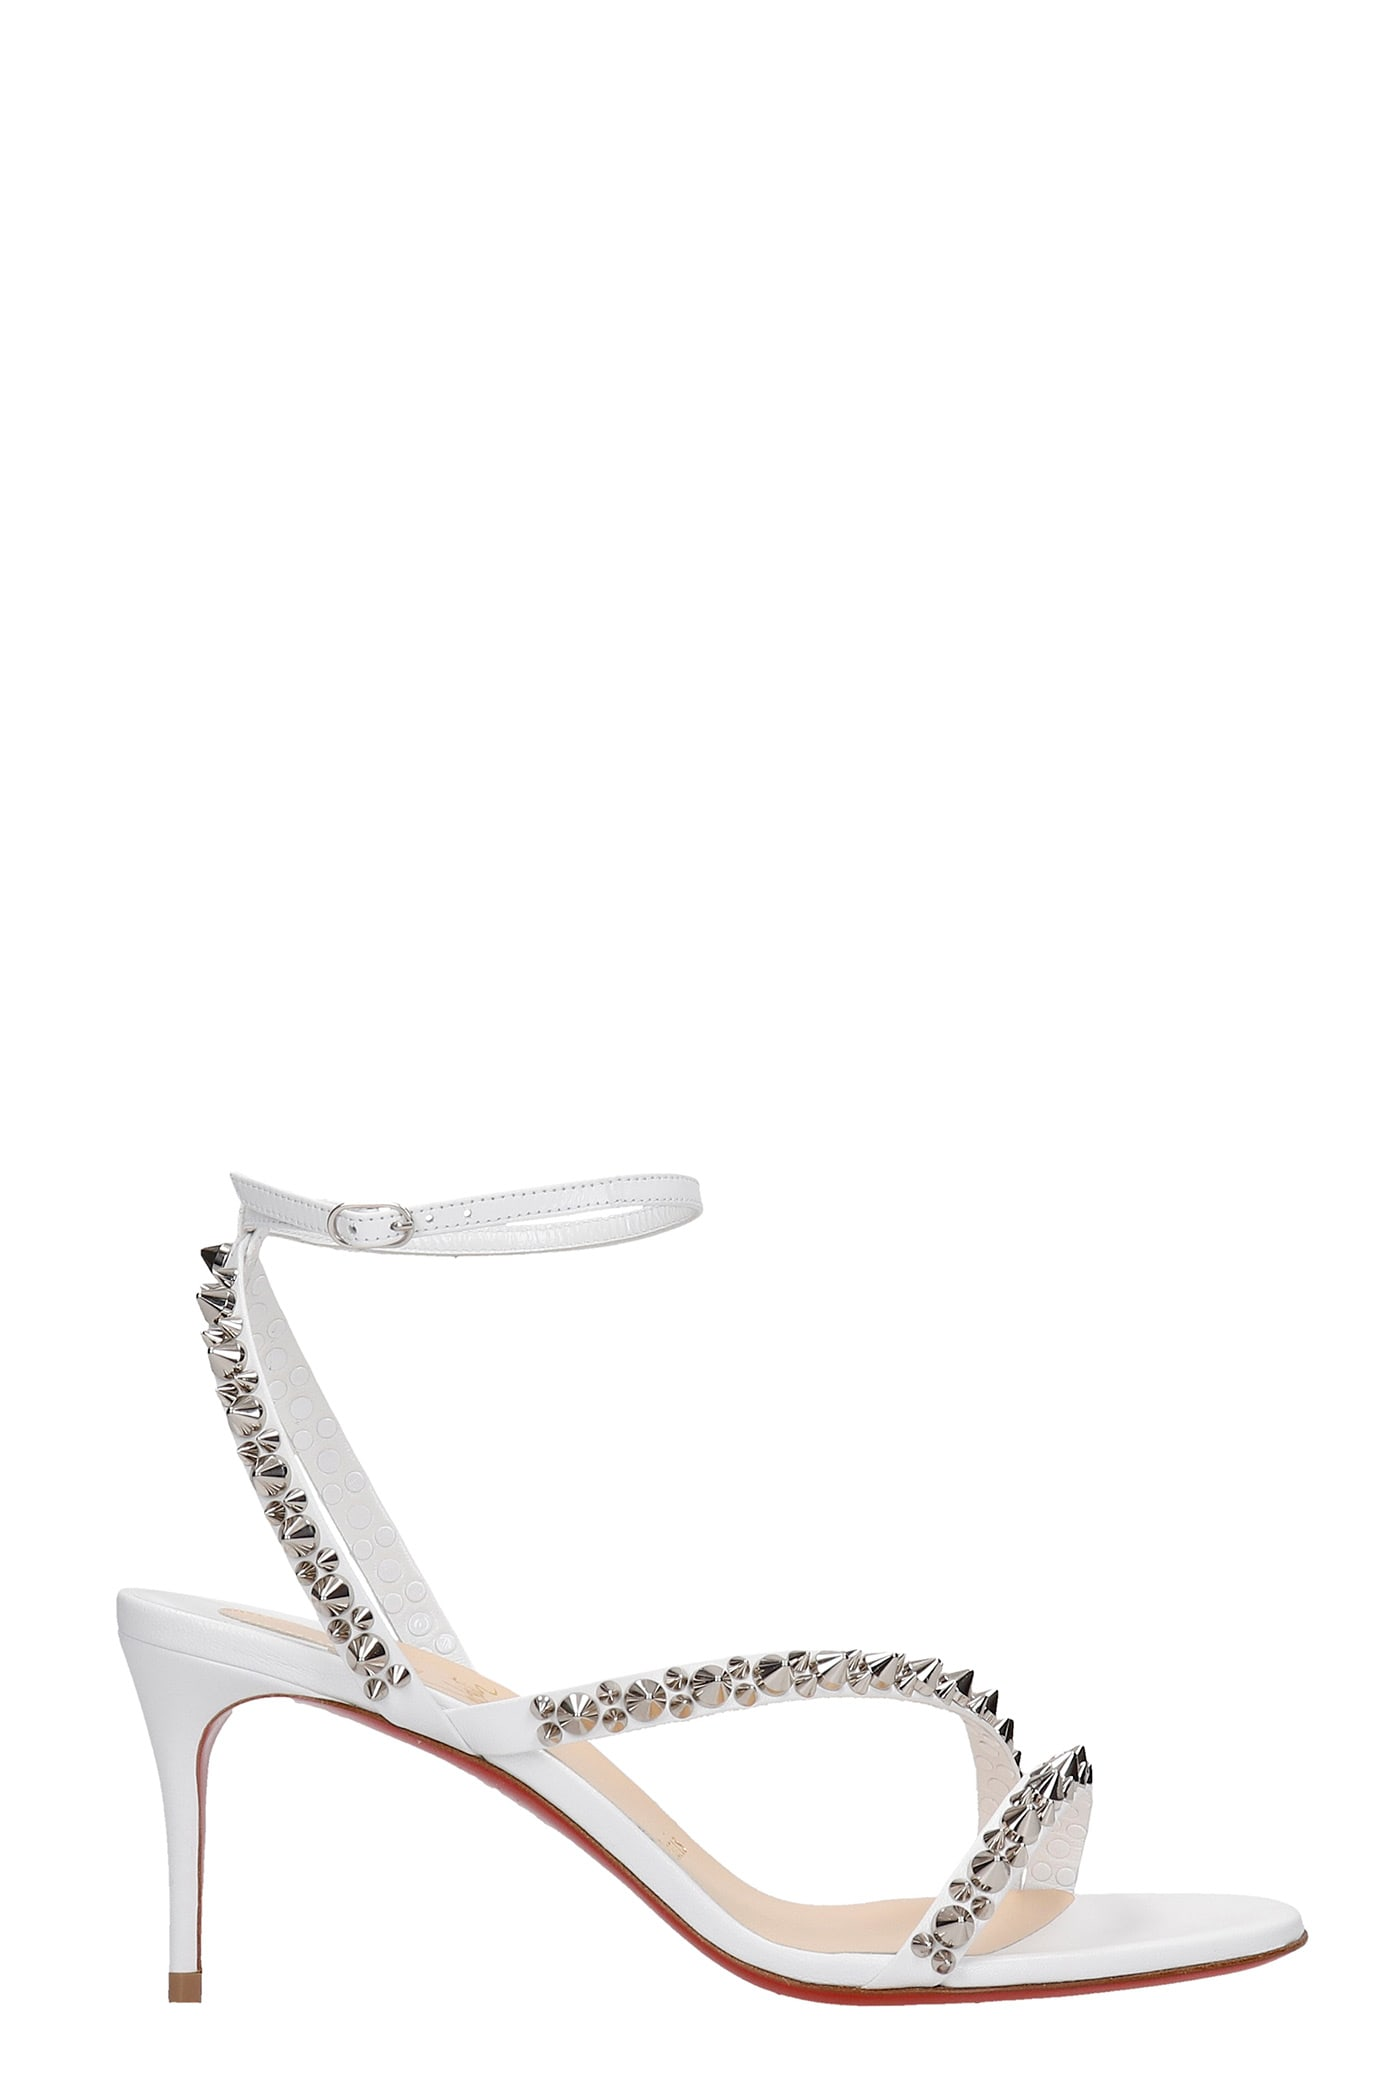 Christian Louboutin MAFALDINA SANDALS IN WHITE LEATHER